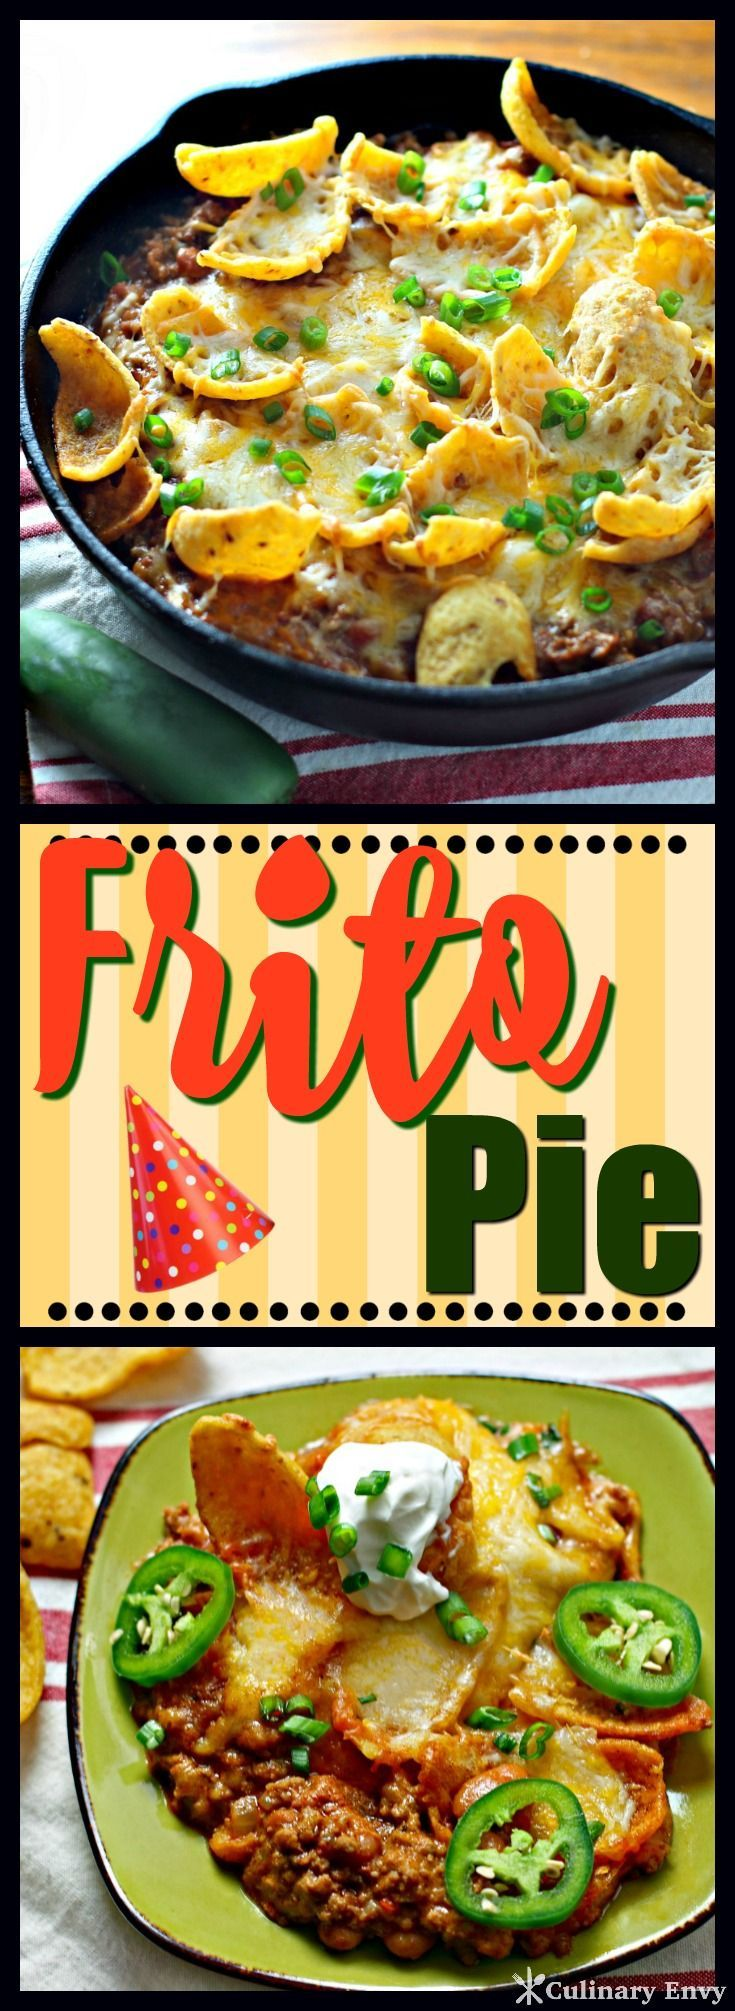 """This Frito Pie dinner recipe is crunchy, cheesy and extra easy with delicious favorites like ground beef, chorizo, onion and pinto beans. This """"anytime of the week"""" casserole will have everyone begging for seconds! Click to read more!"""